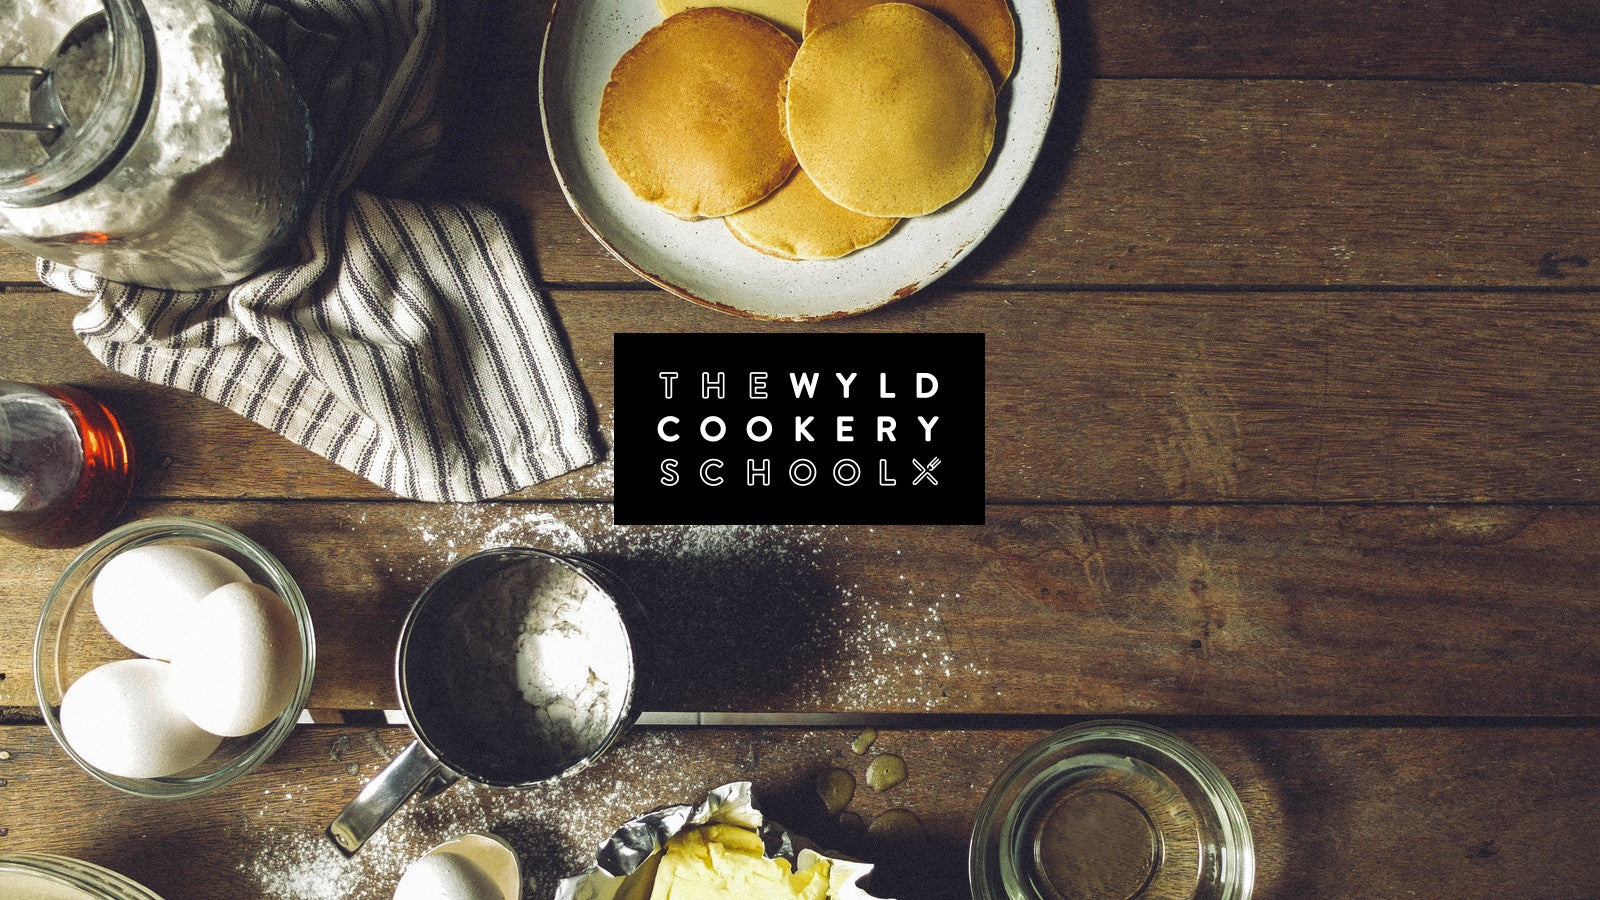 The Wyld Cookery School